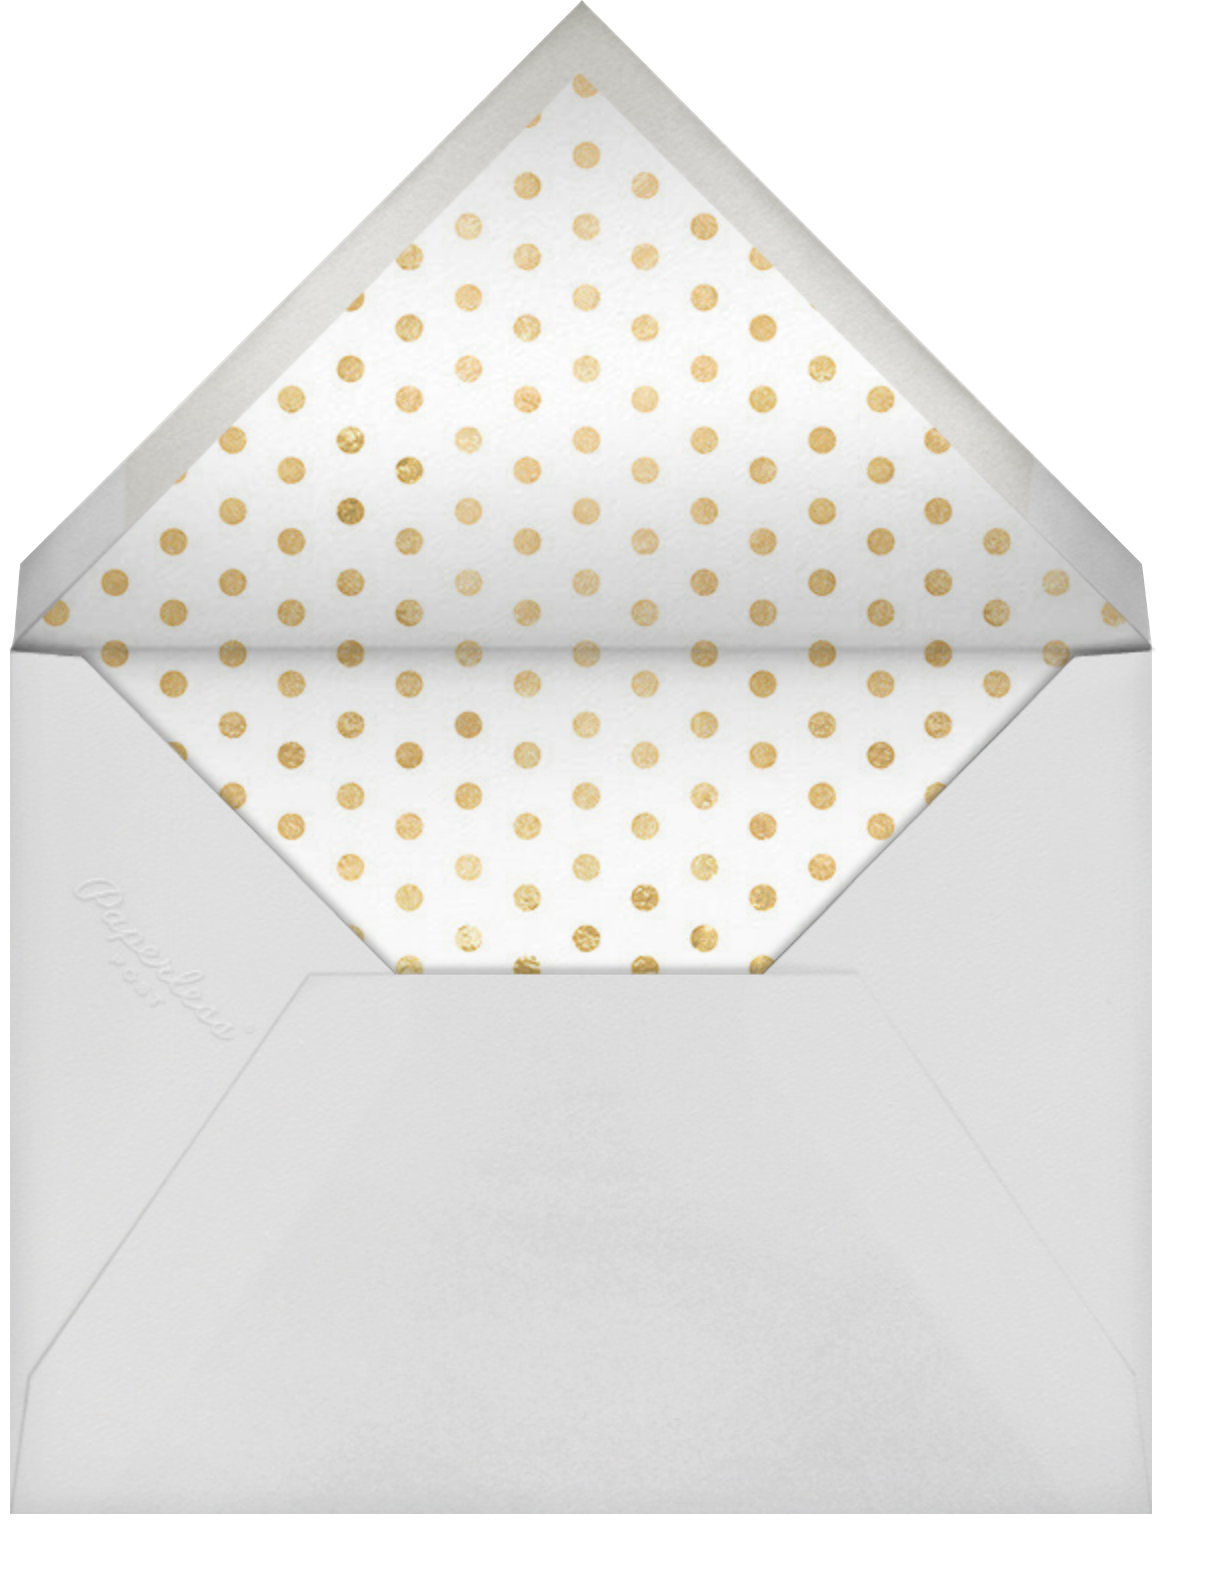 Parenthetical Thanks - kate spade new york - Thank you - envelope back